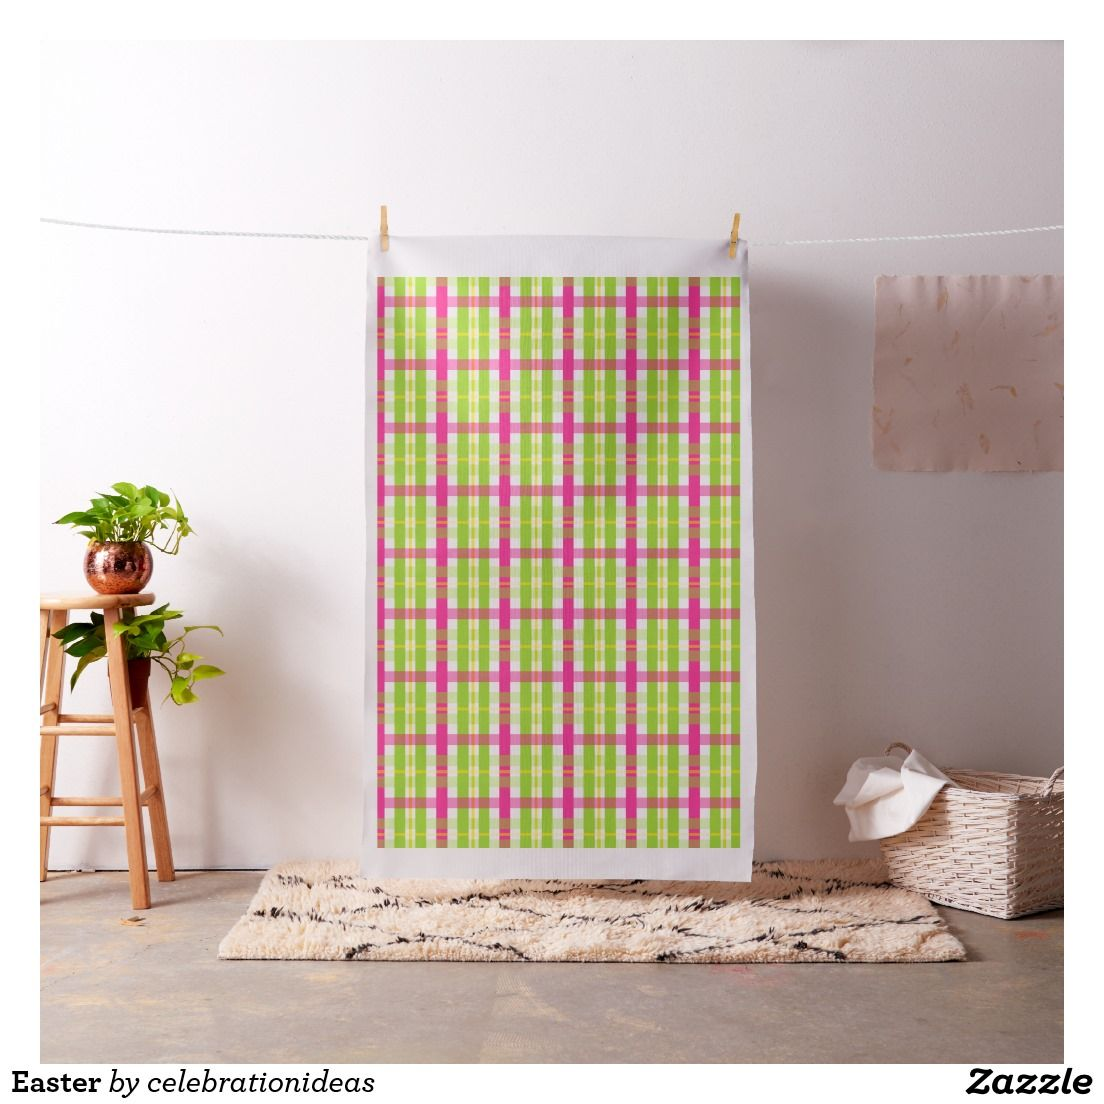 Sold. #plaid #gingham #pattern  #Fabric available in different products. Check more at www.zazzle.com/celebrationideas